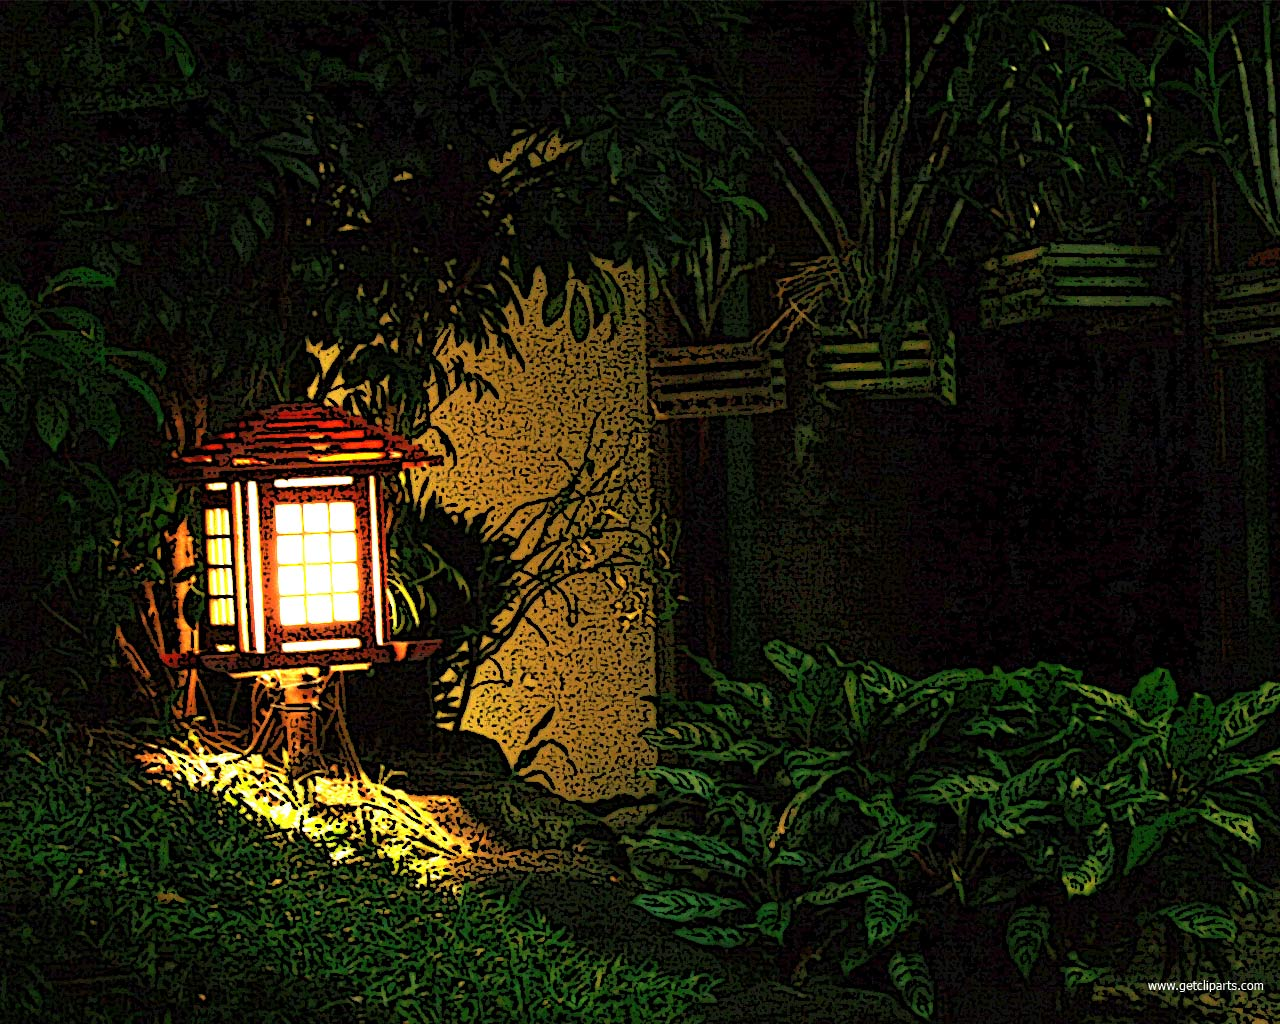 Garden theme background for powerpoints. This night lamp image designed at